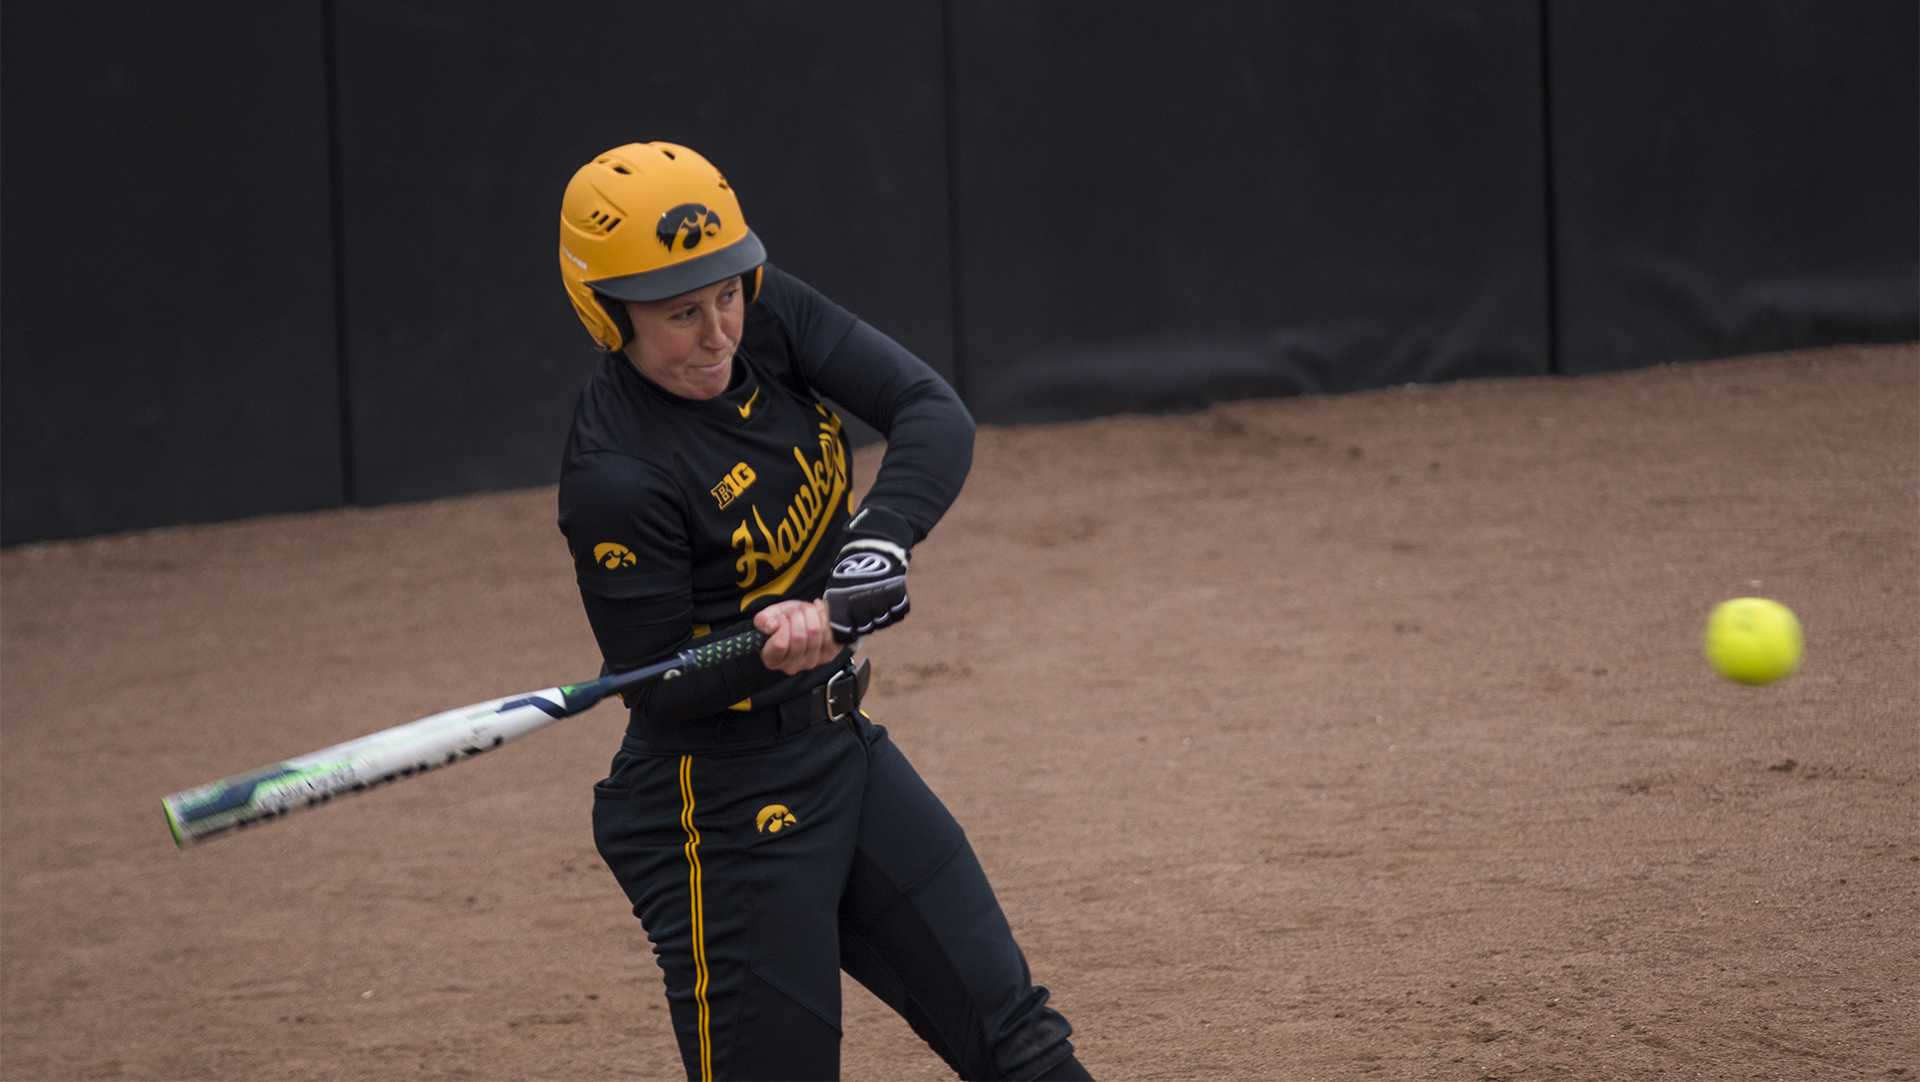 Iowa pitcher Mallory Kilian bats during the Iowa/Wisconsin softball game at Bob Pearl Field  on Sunday, April 8, 2018. The Hawkeyes defeated the Badgers in the third game of the series, 5-3. (Lily Smith/The Daily Iowan)